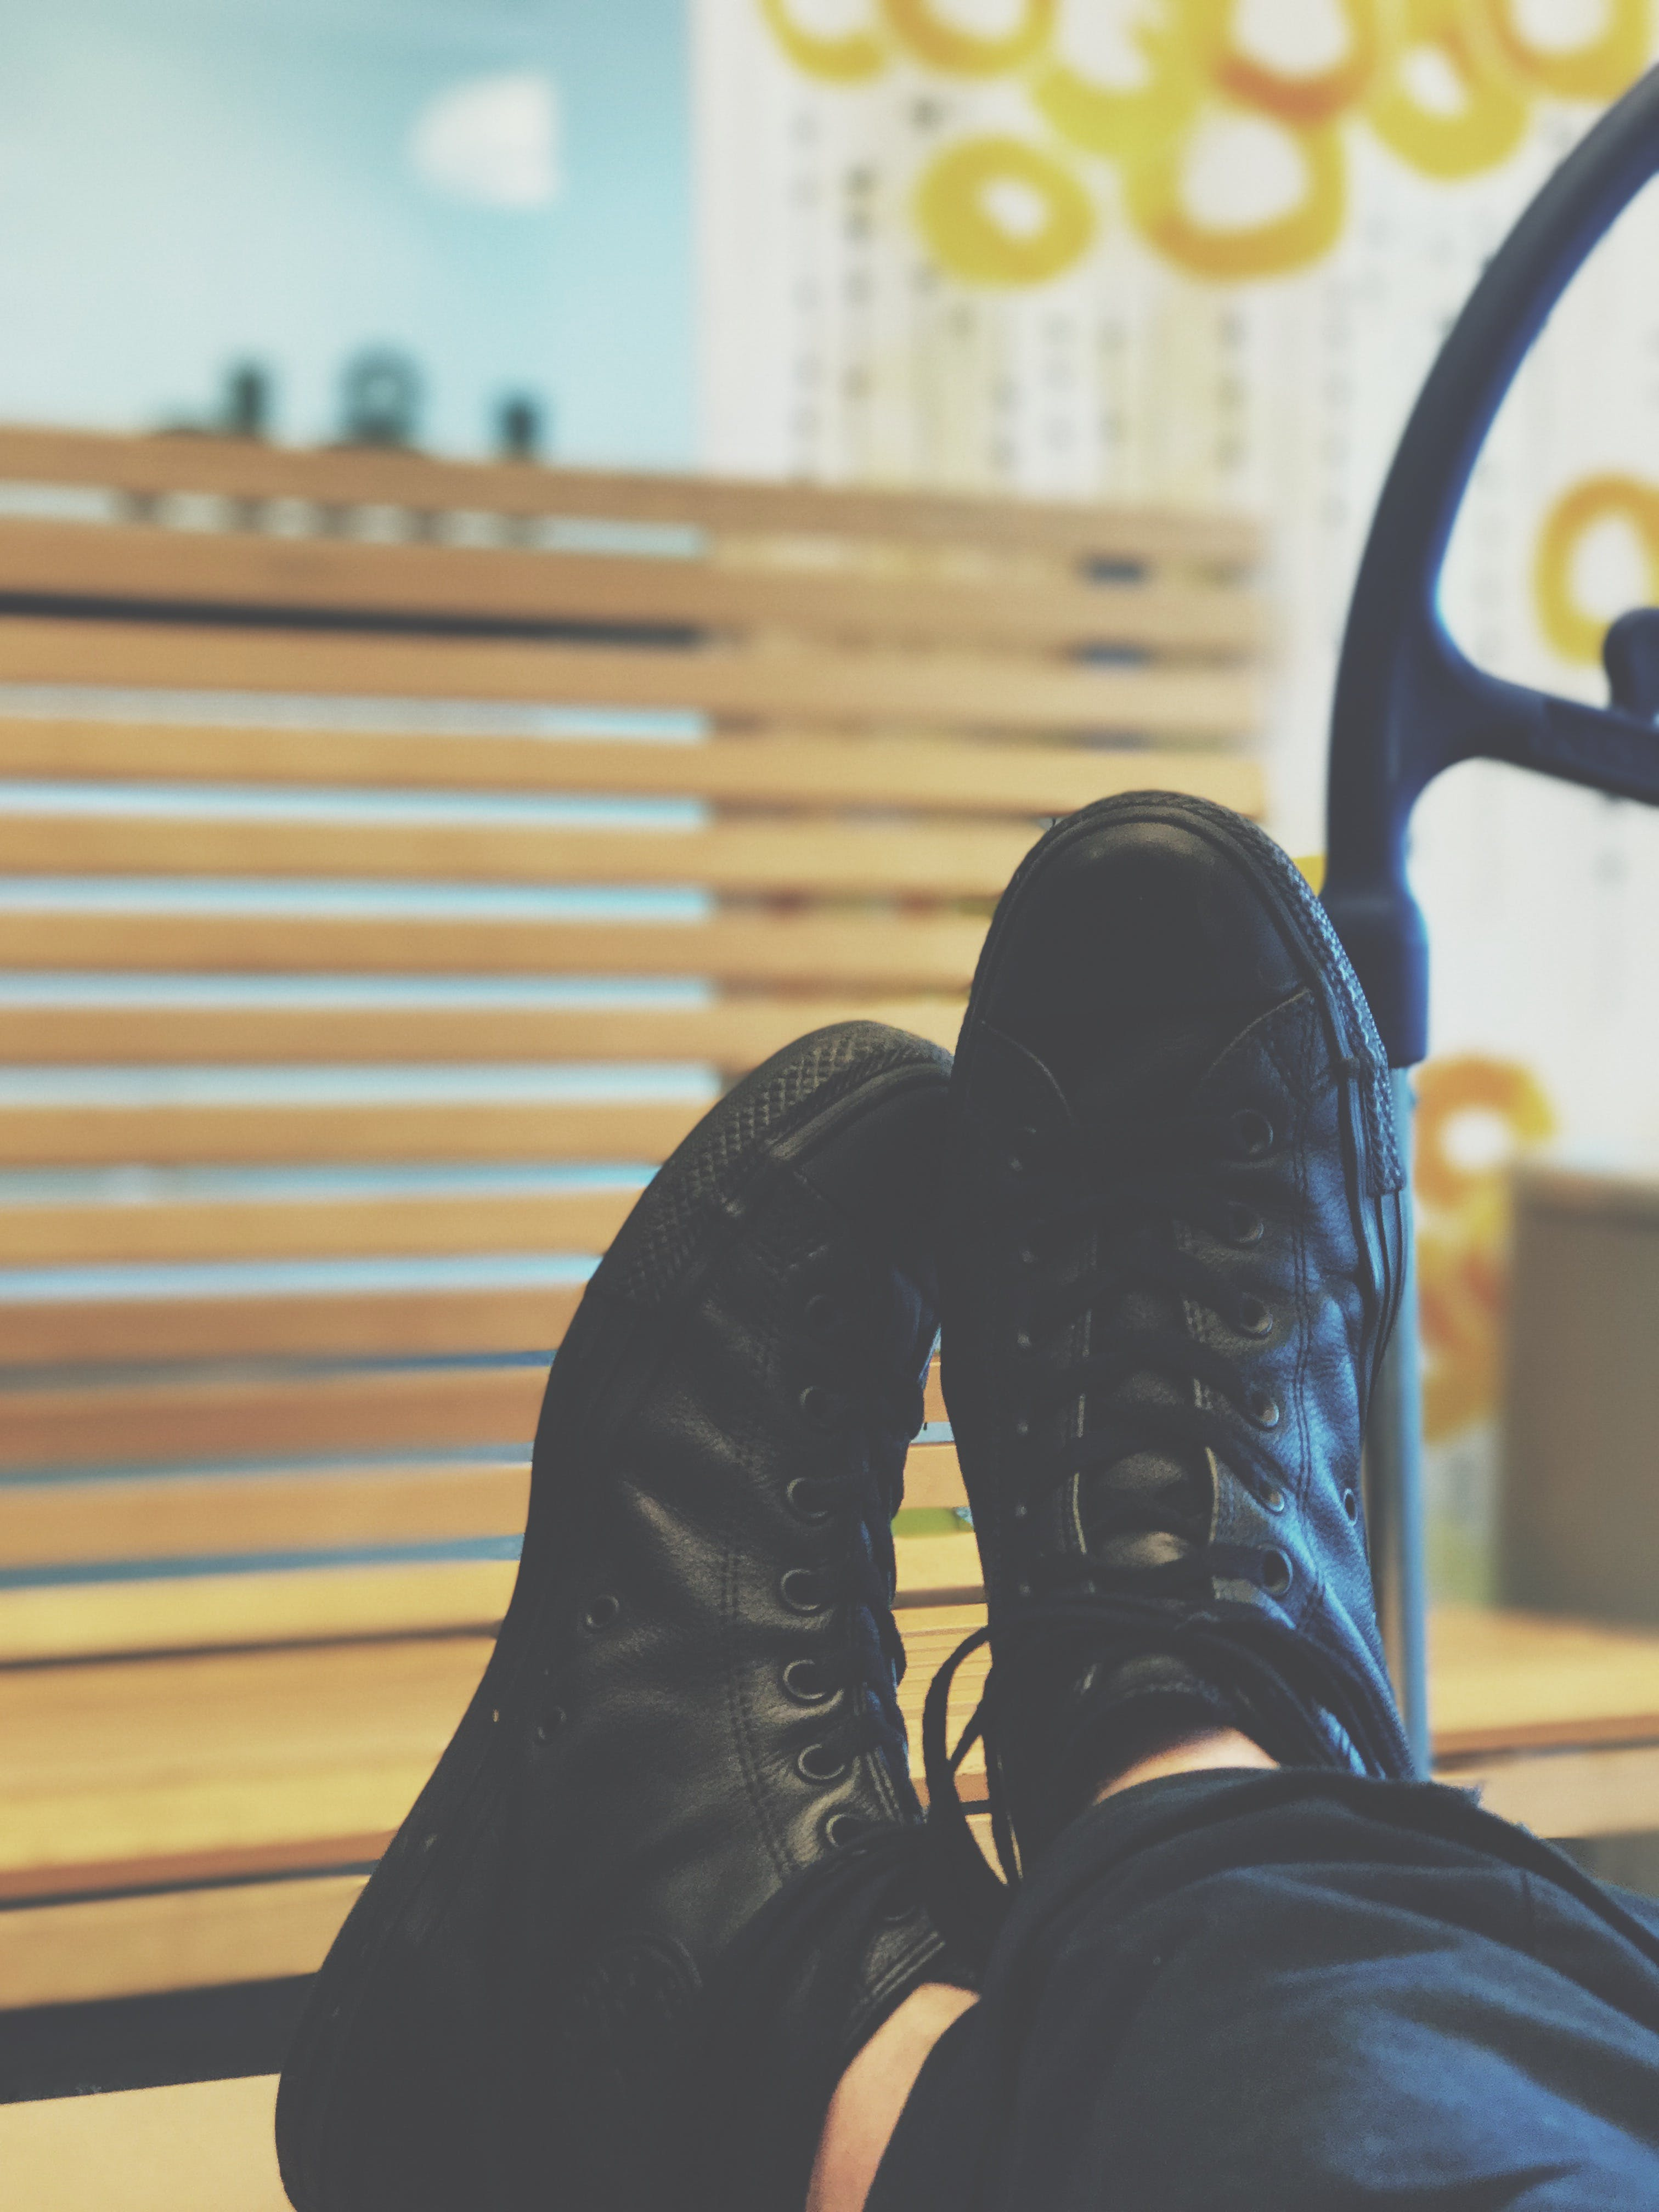 Free stock photo of bench, fashion, shoes, blur